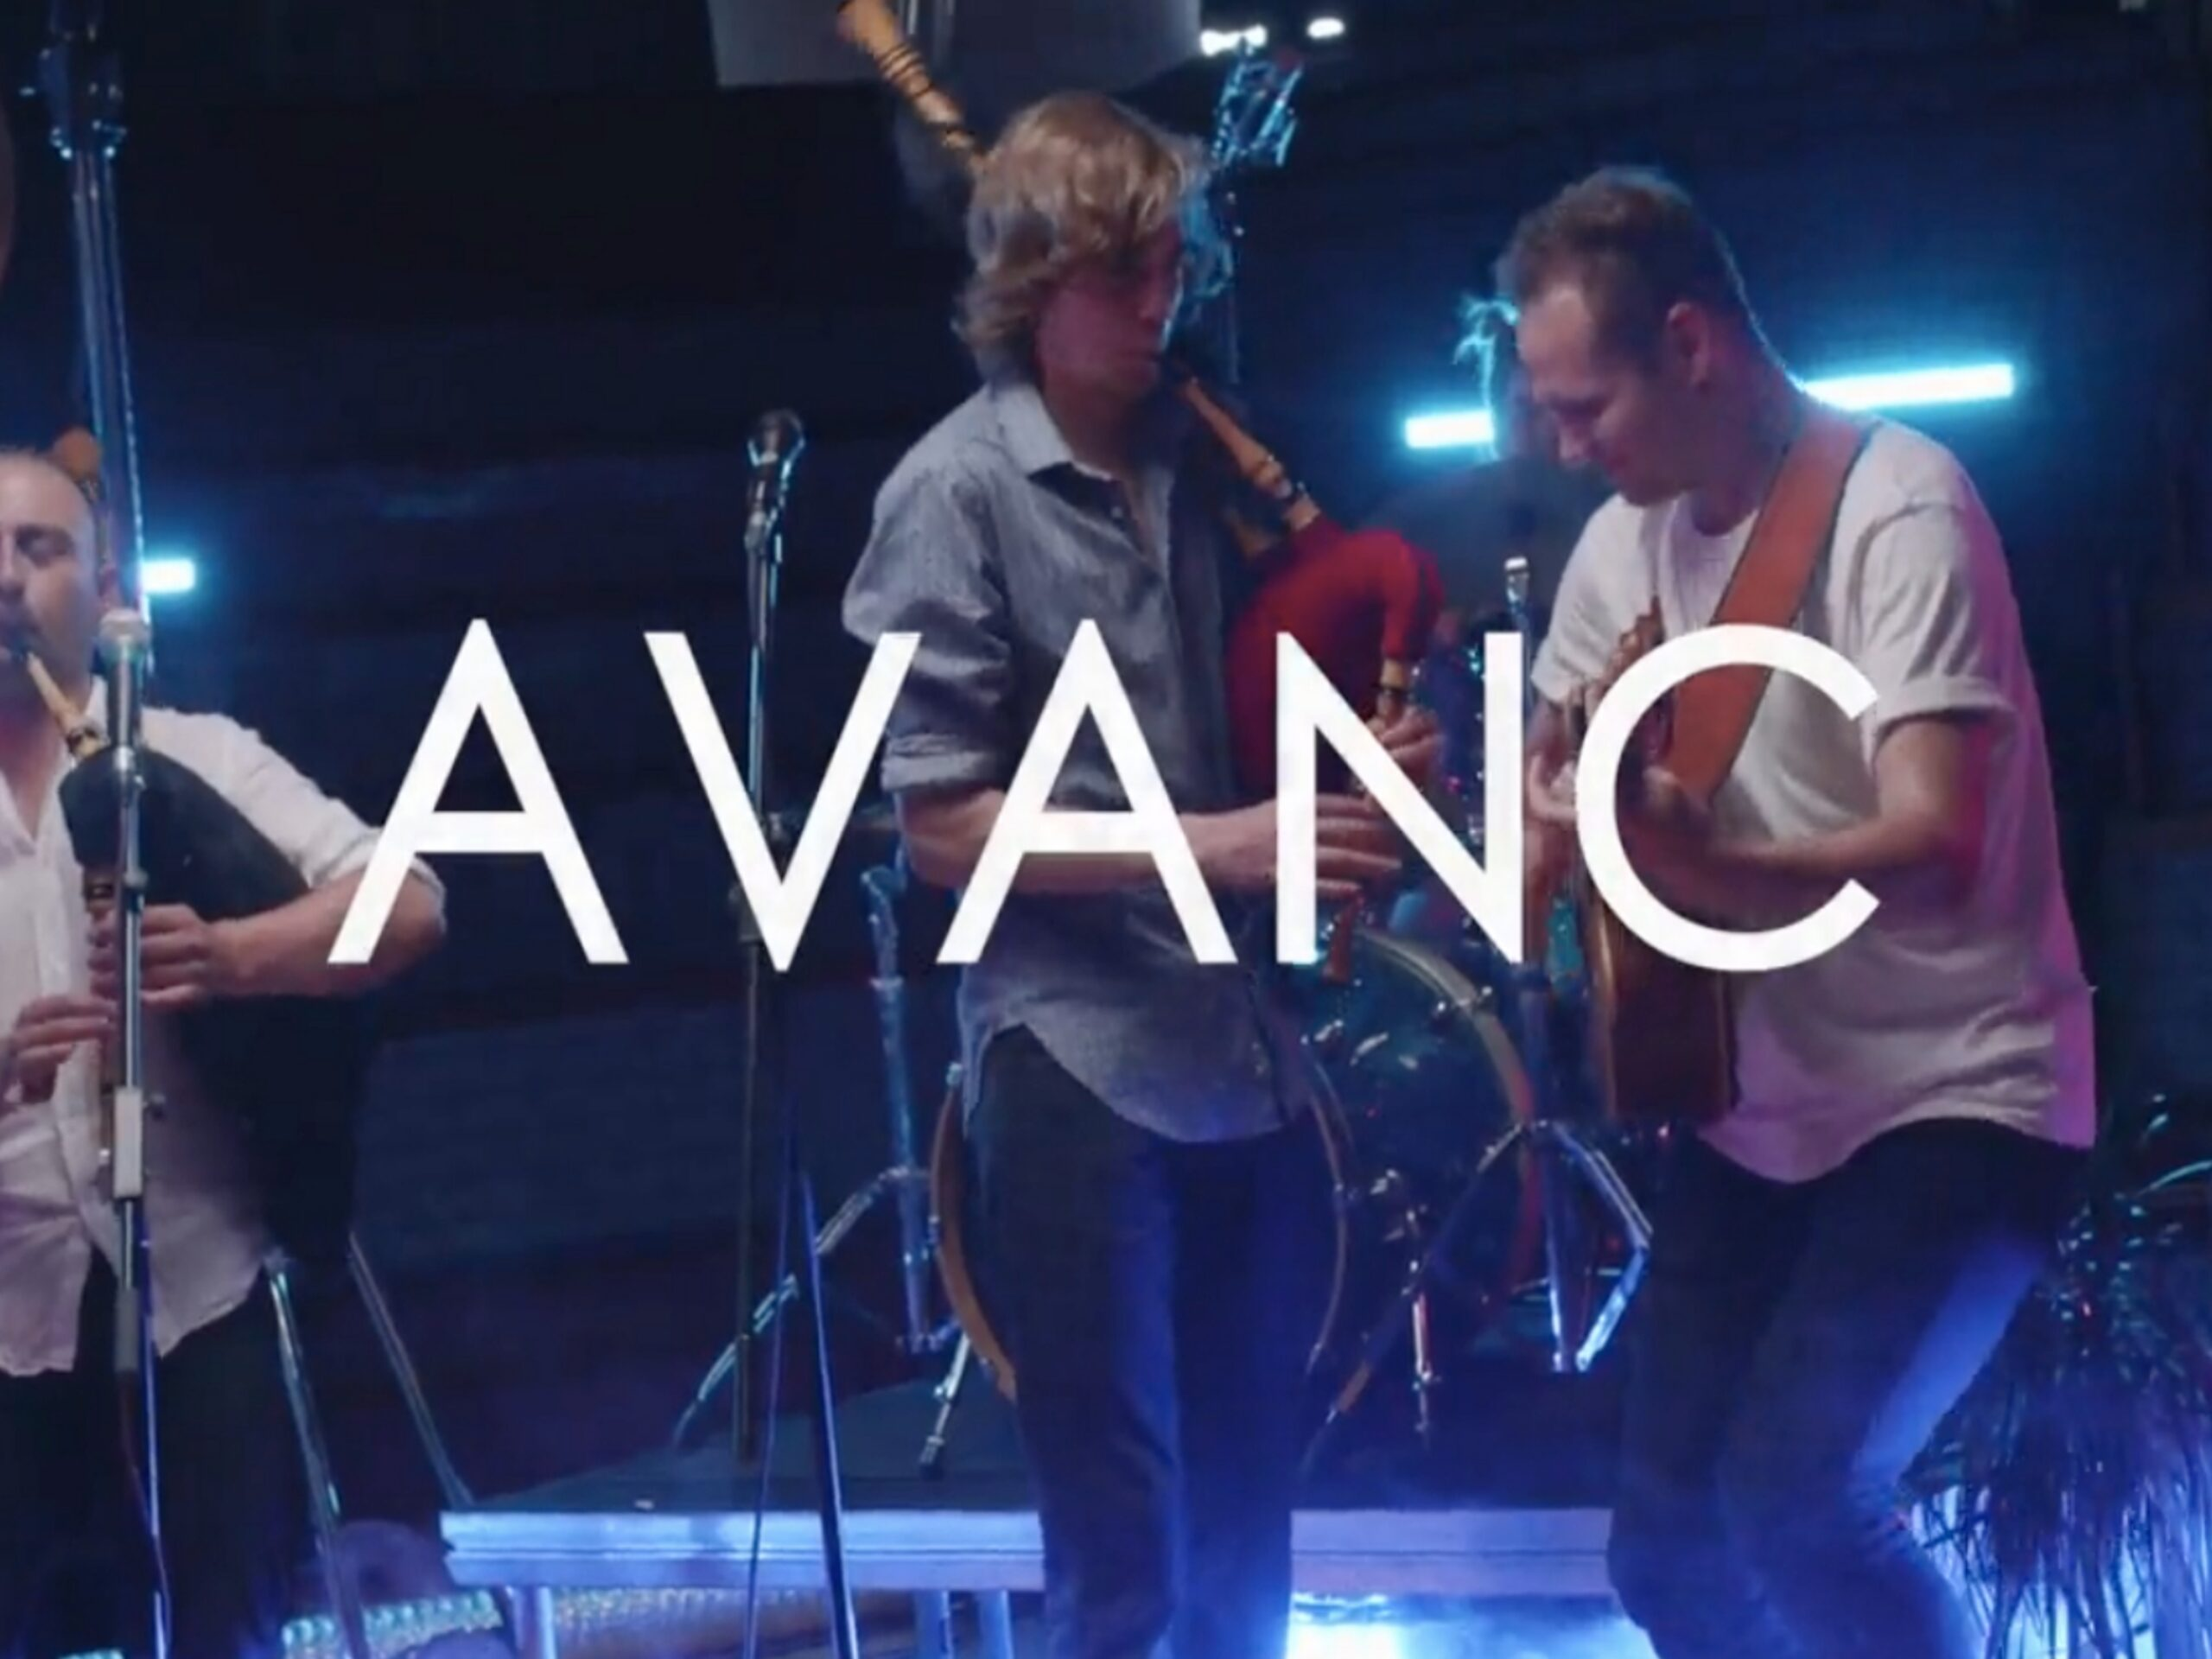 Avanc Online Concert tickets now available